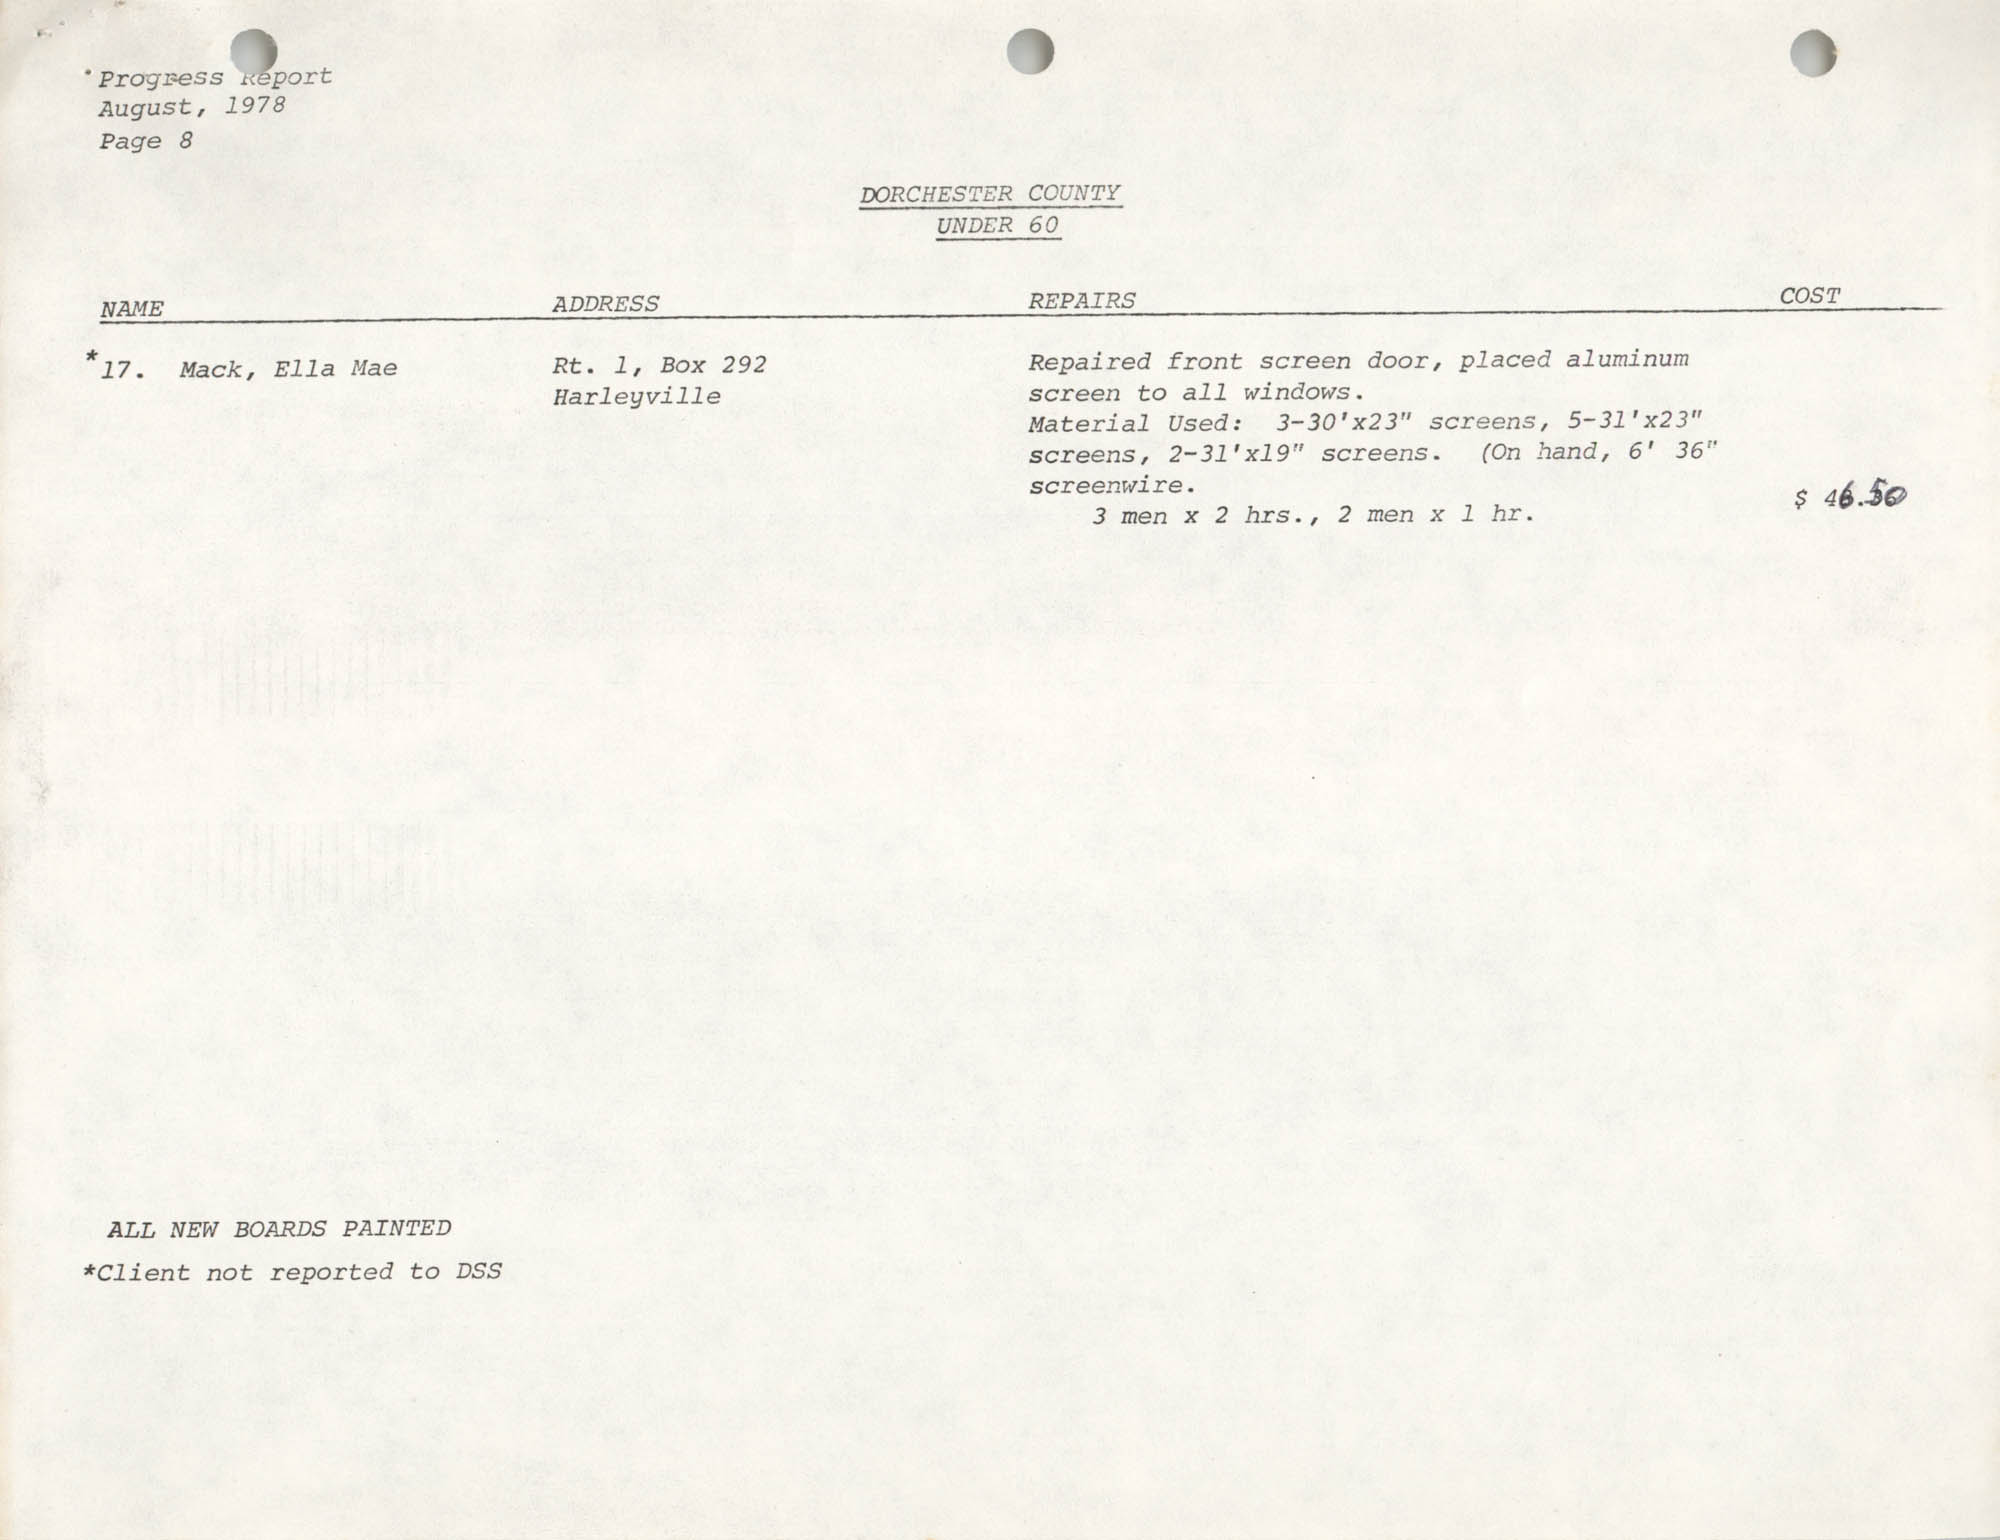 Housing Assistance Program Report, August 1978, Page 8